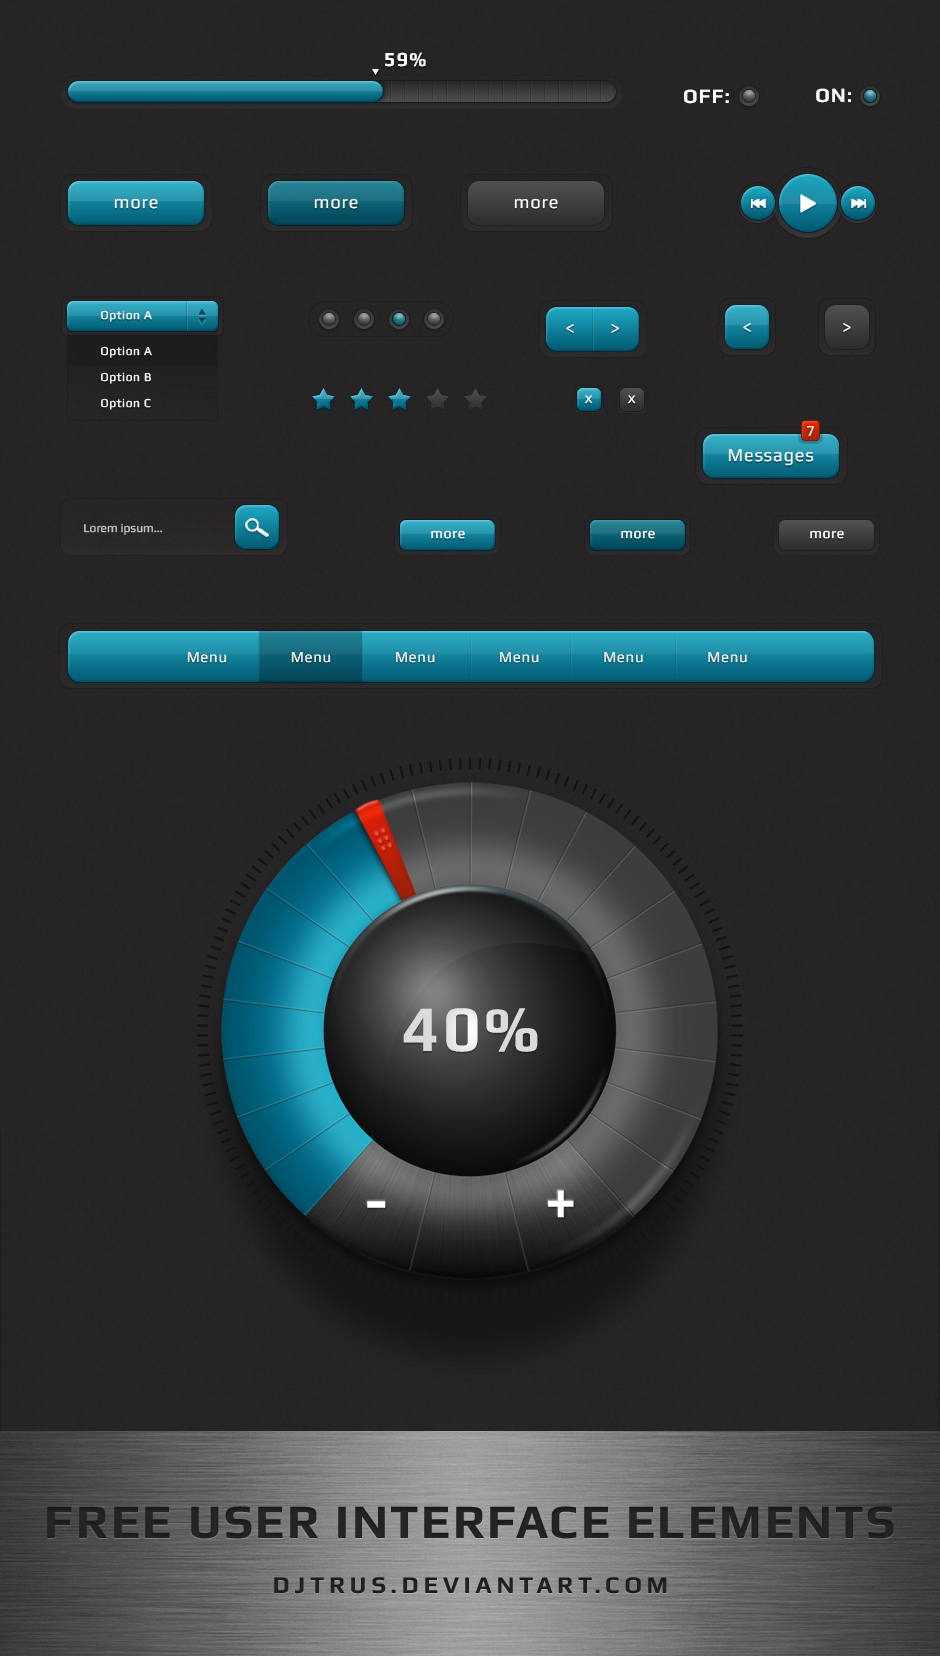 Free user interface elements